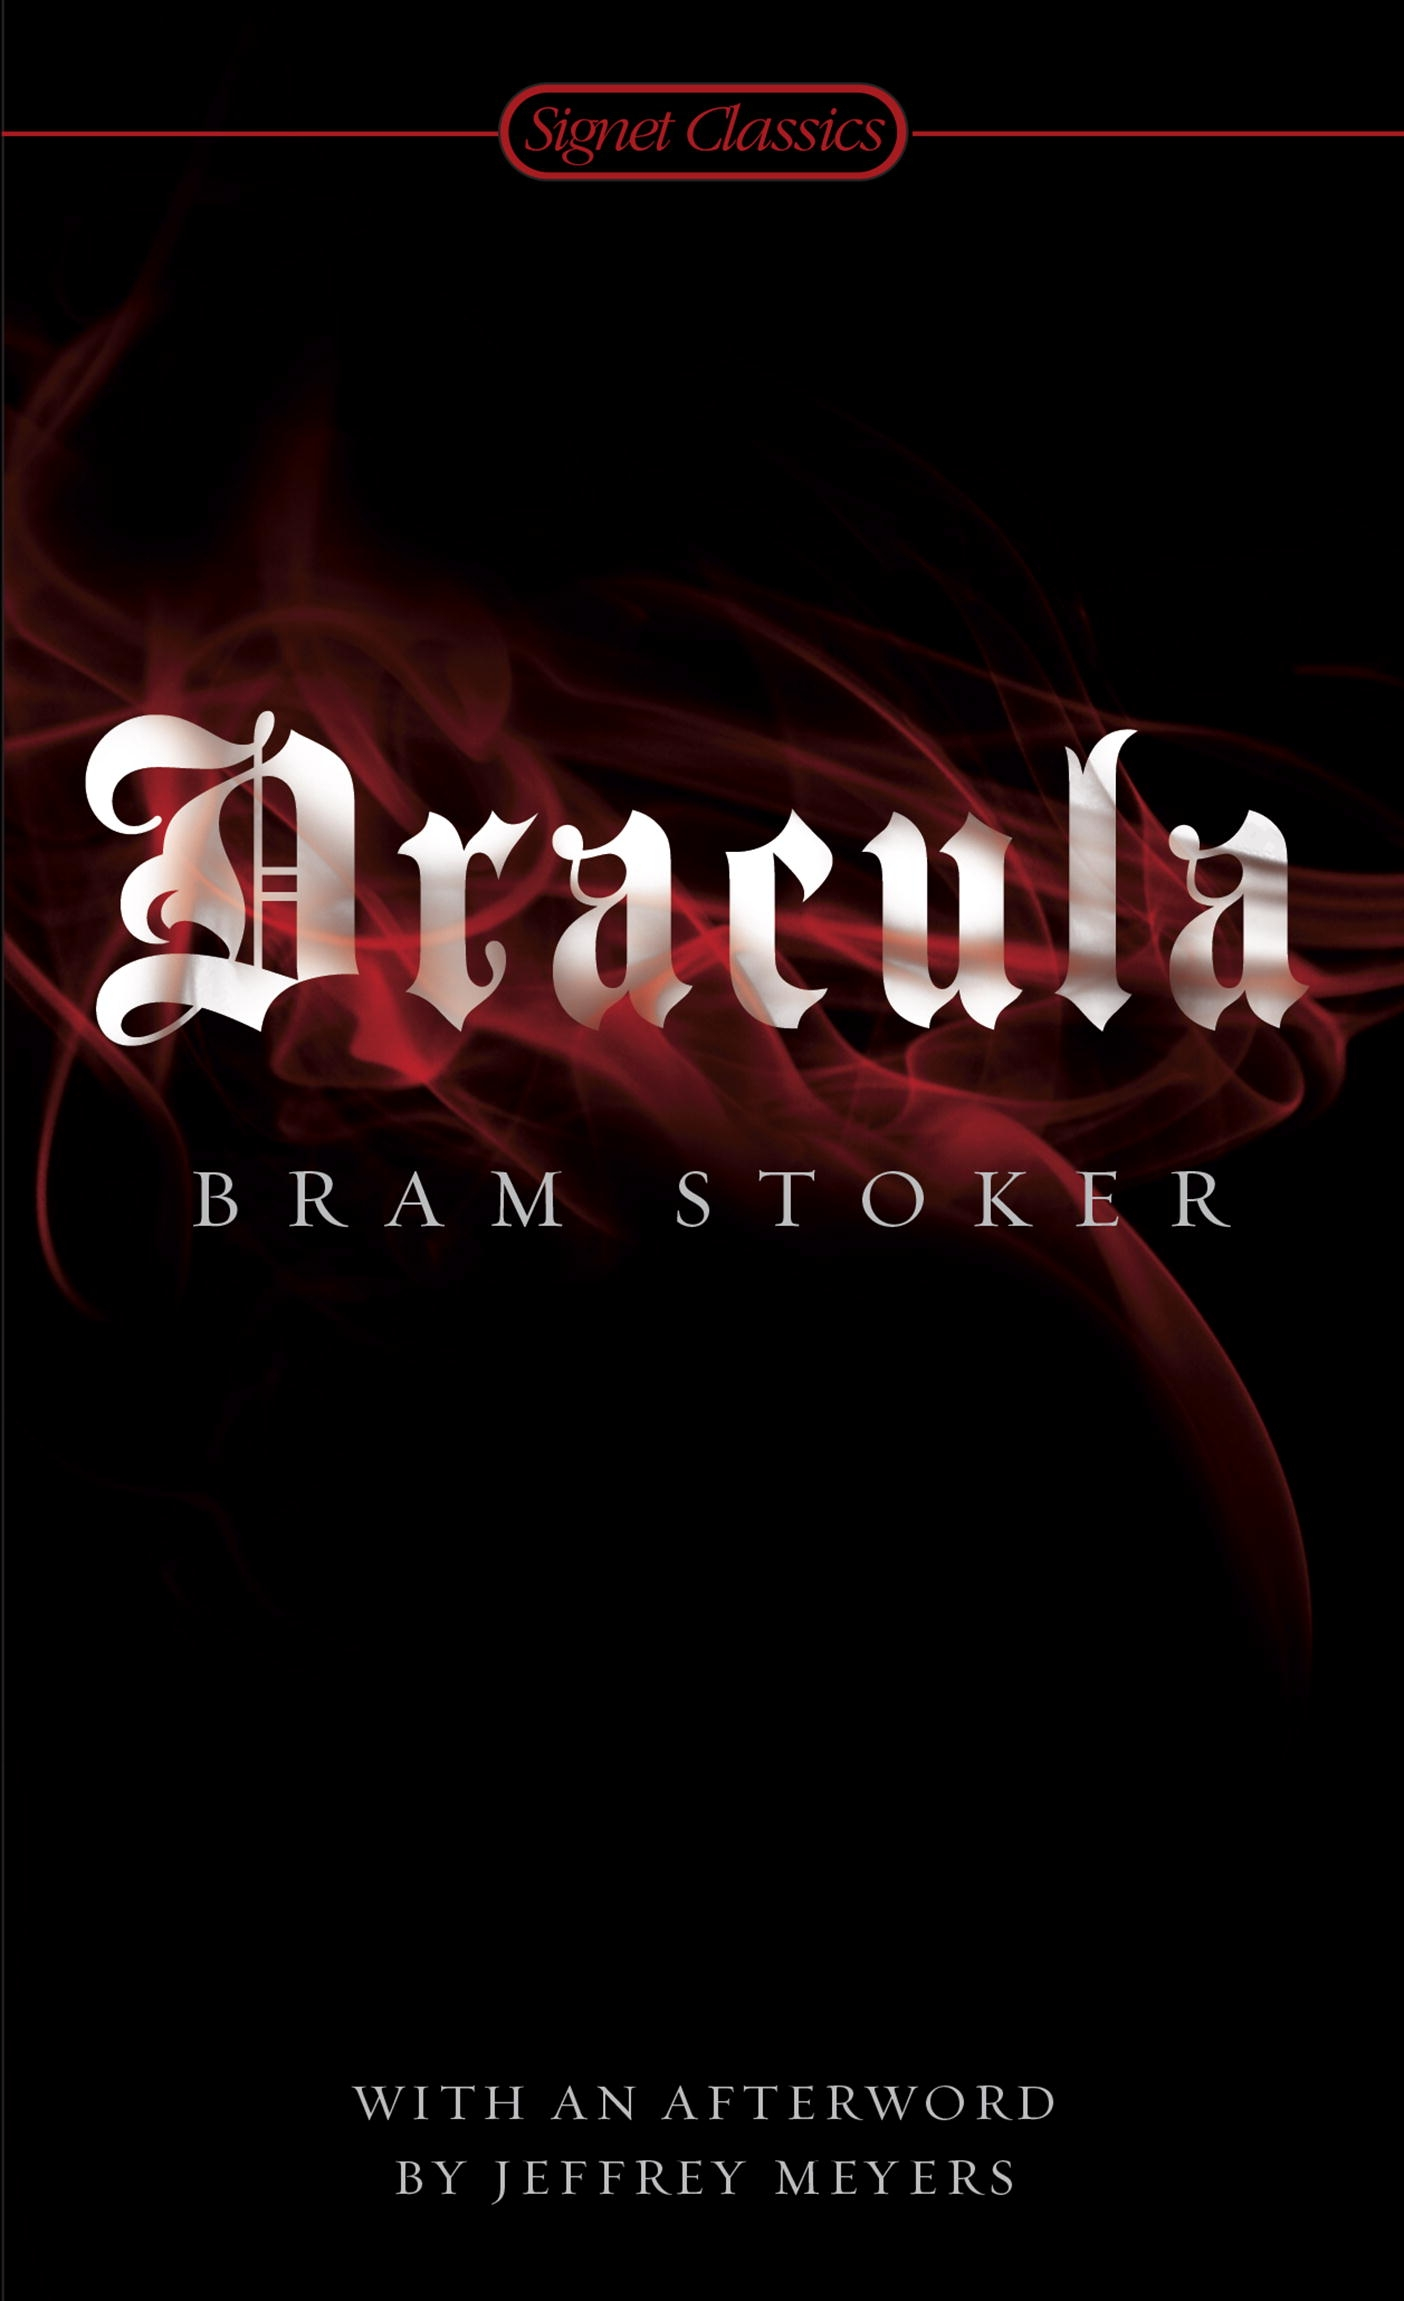 bram stoker report Dracula [bram stoker] on amazoncom free shipping on qualifying offers during a business visit to count dracula's castle in transylvania, a young english.